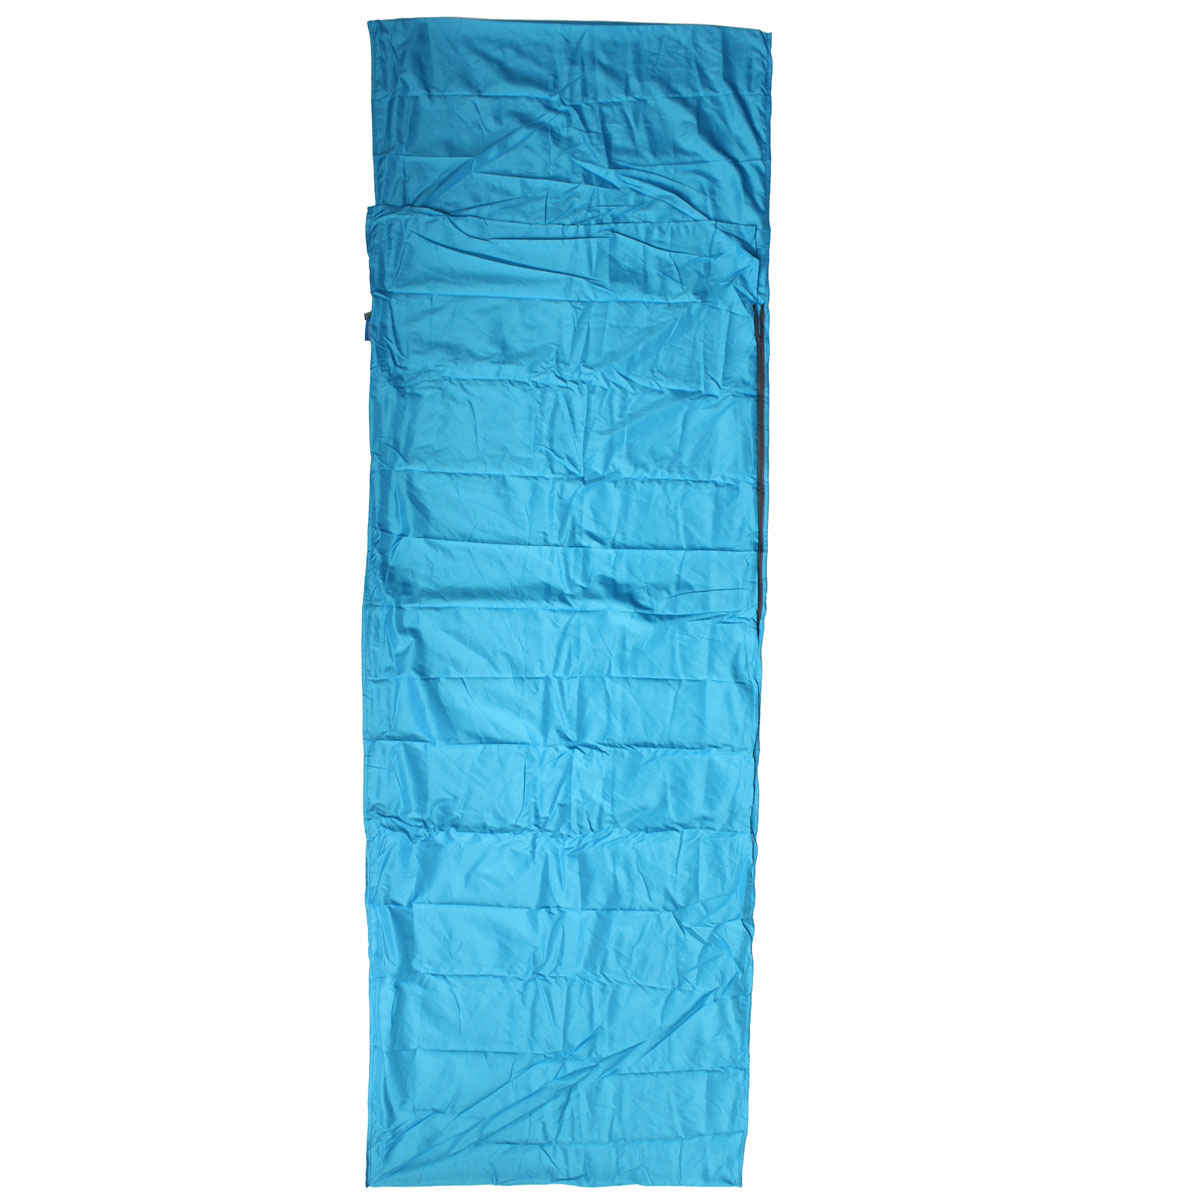 Multifuntional Ultralight Portable Camping hiking travel Outdoor summer Envelope Sleeping Bag Camping Equipment 200g<br><br>Aliexpress